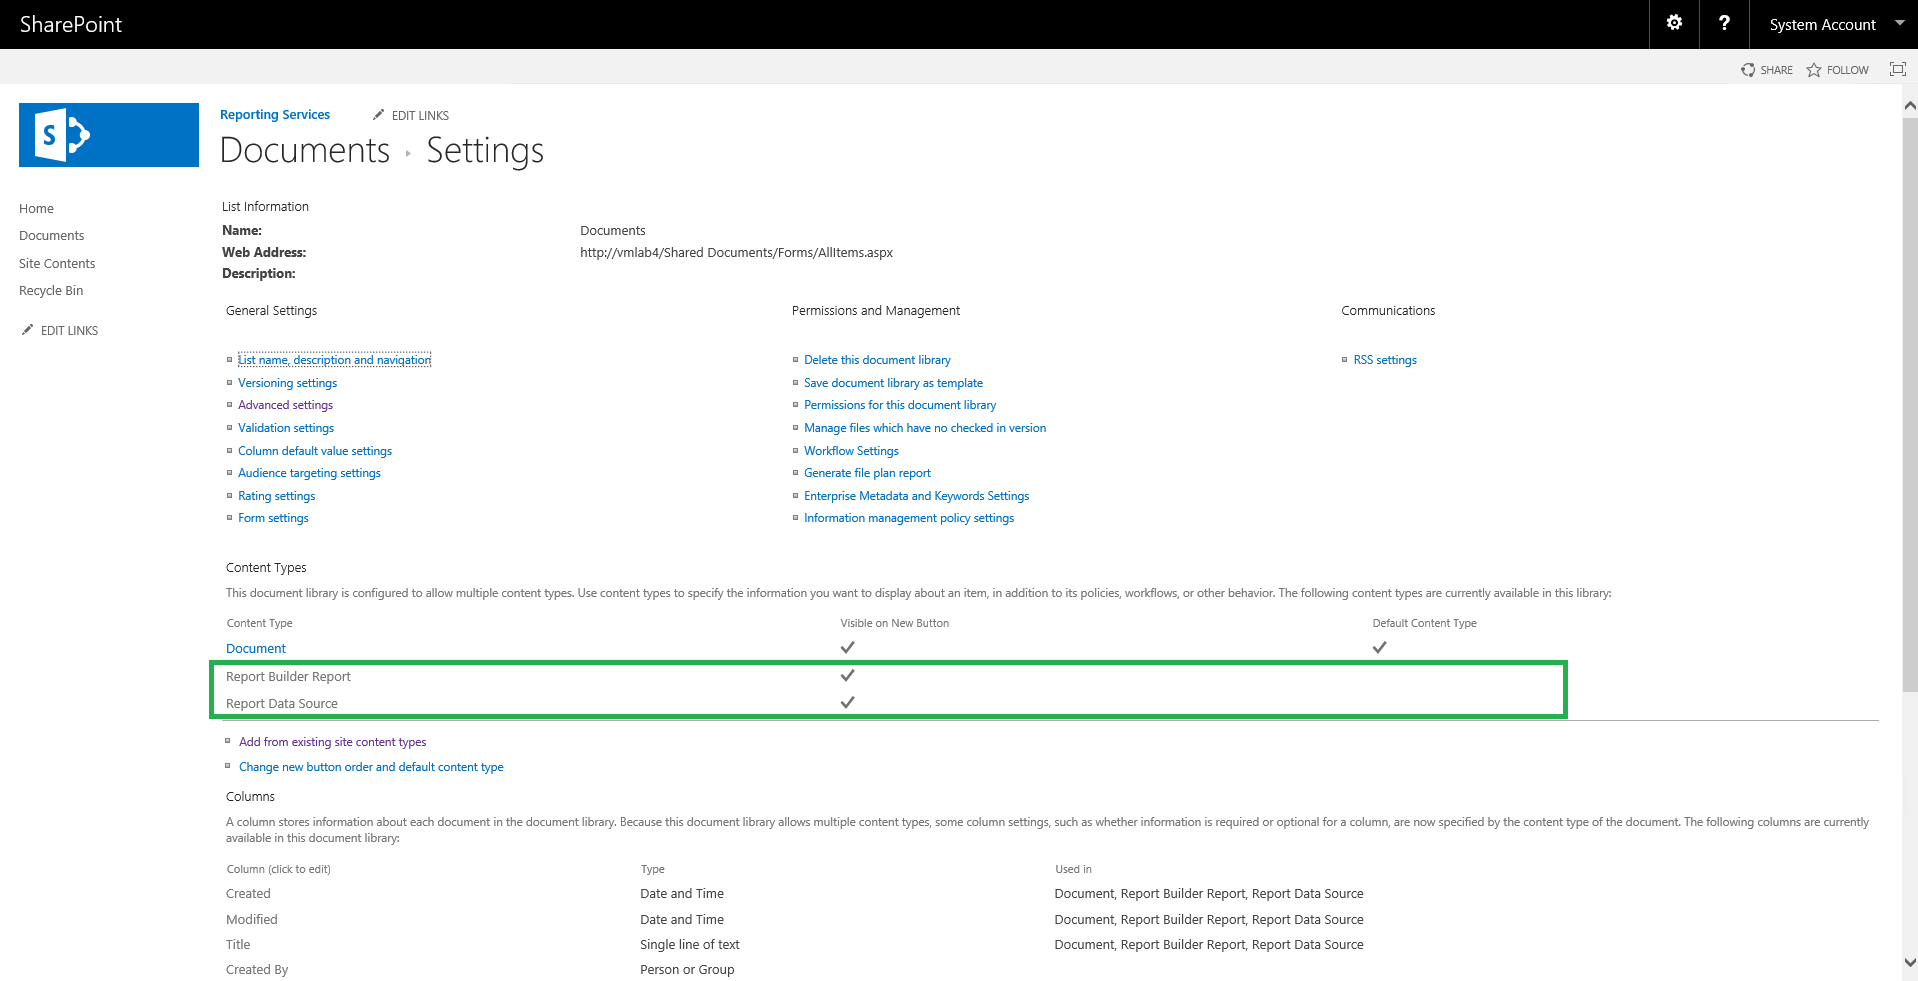 SharePoint 2016: Install Reporting Service in Farm - TechNet